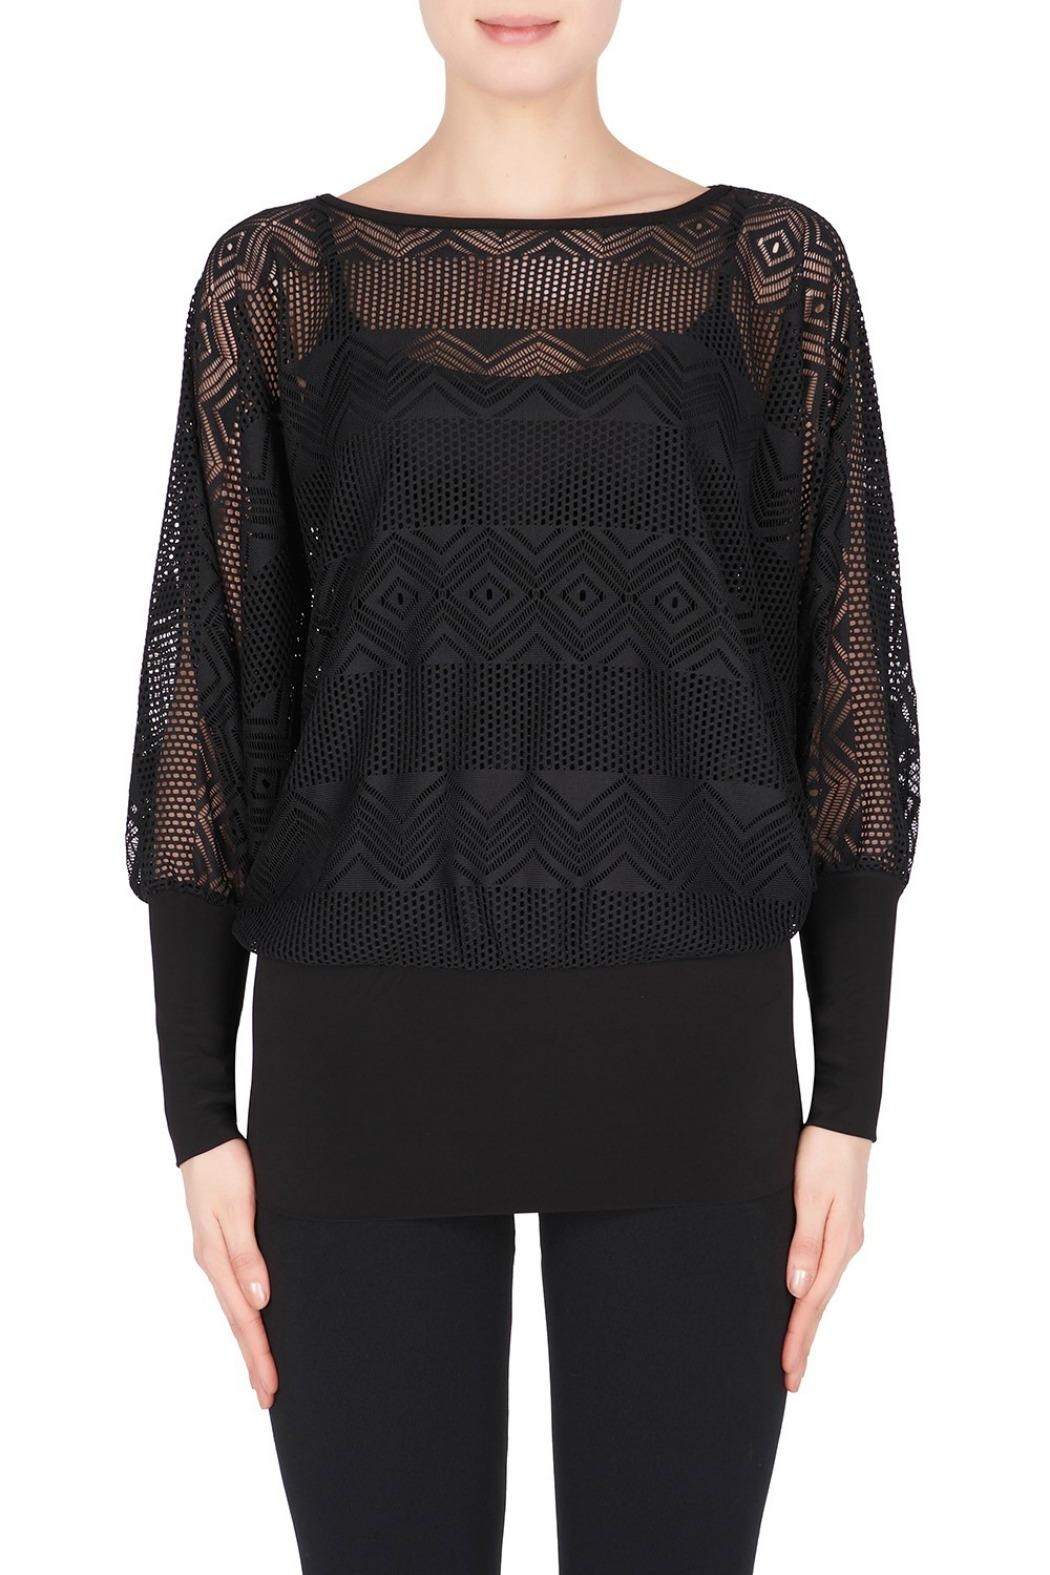 Joseph Ribkoff Long Sleeve Top - Front Cropped Image